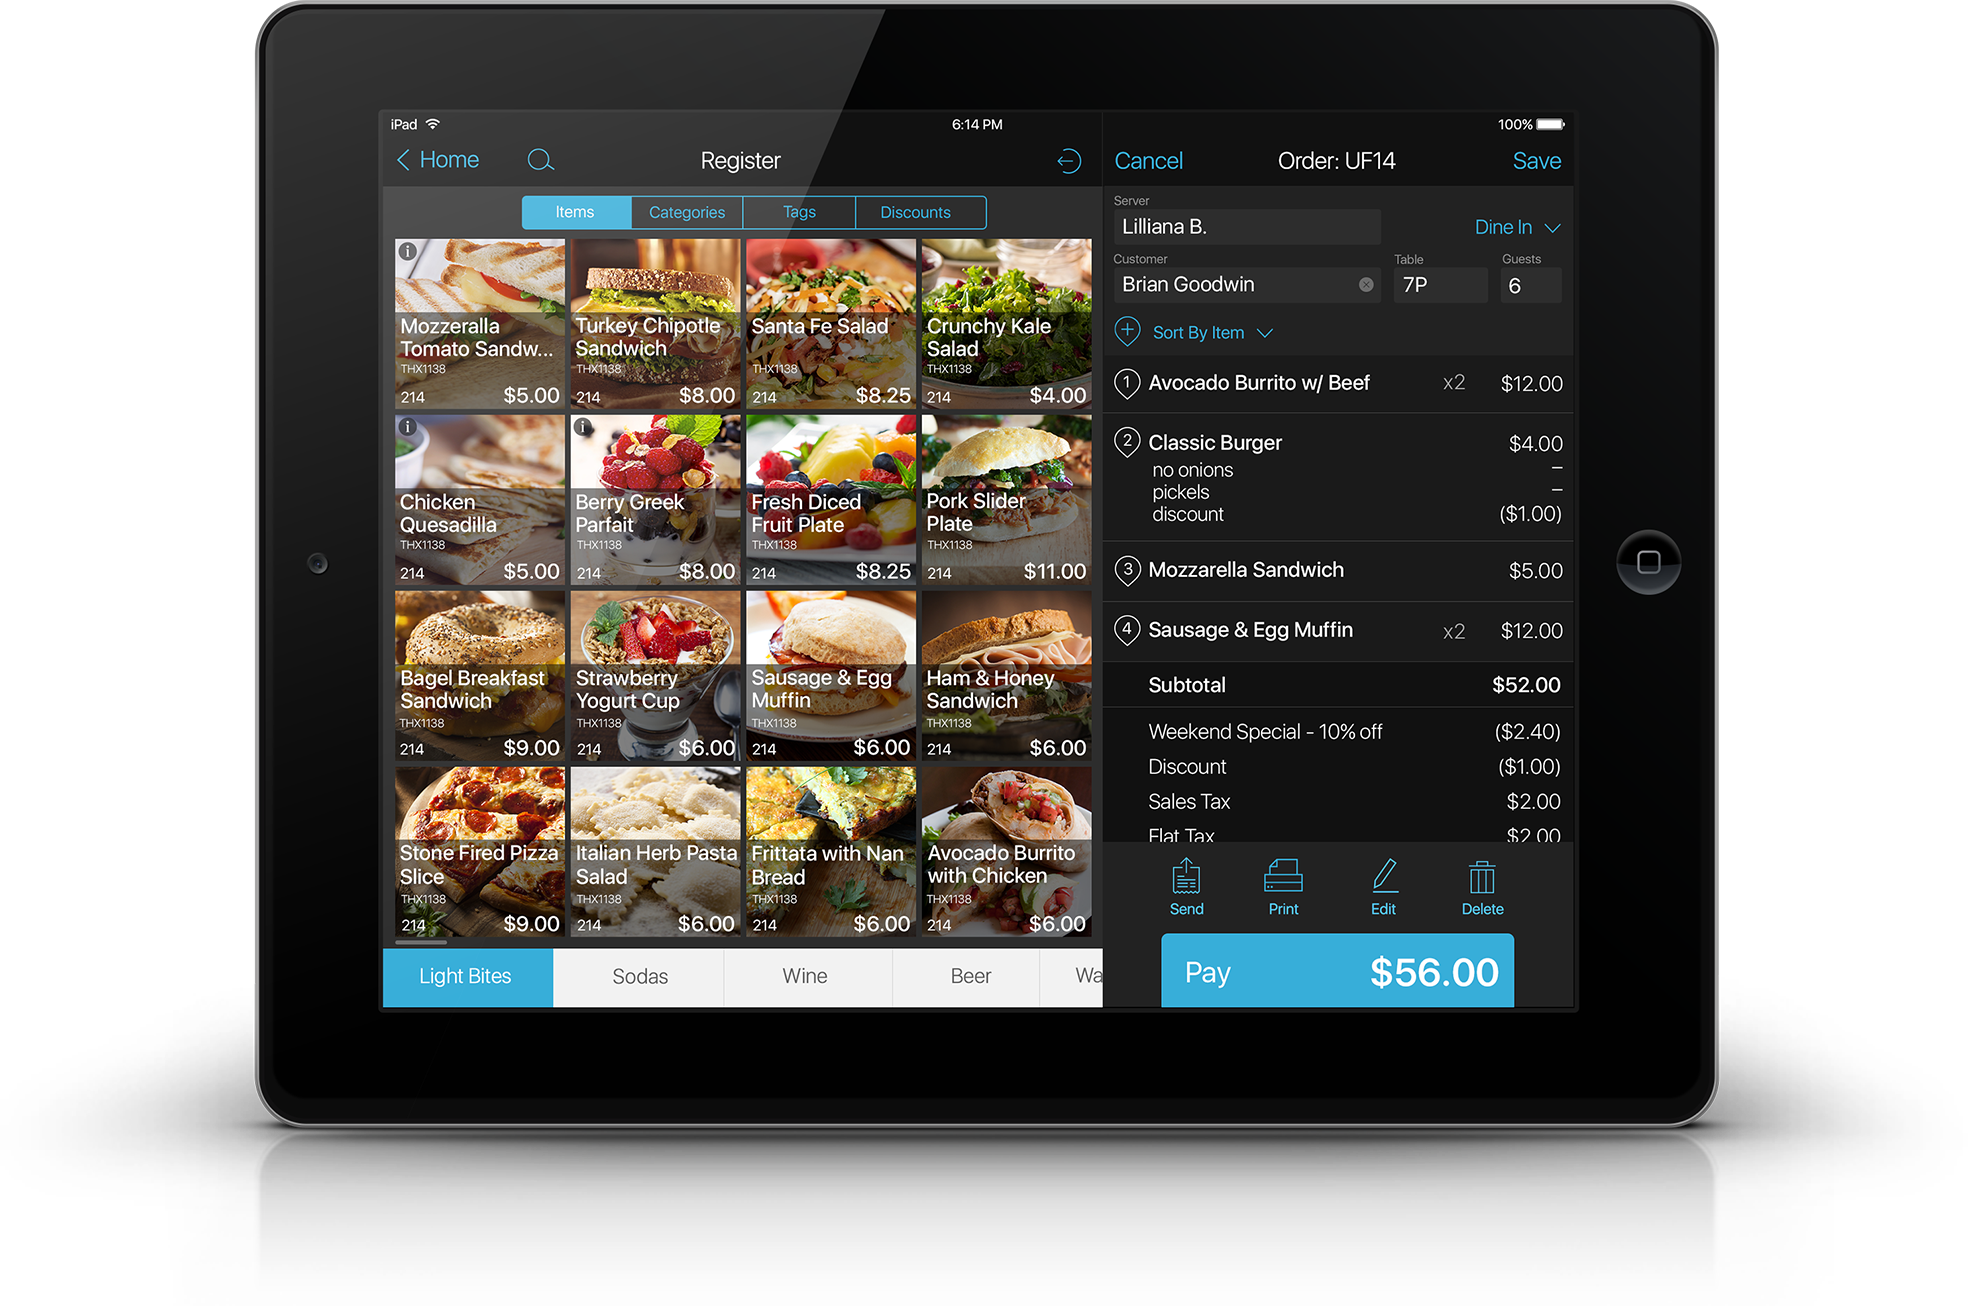 tablet-based pos system